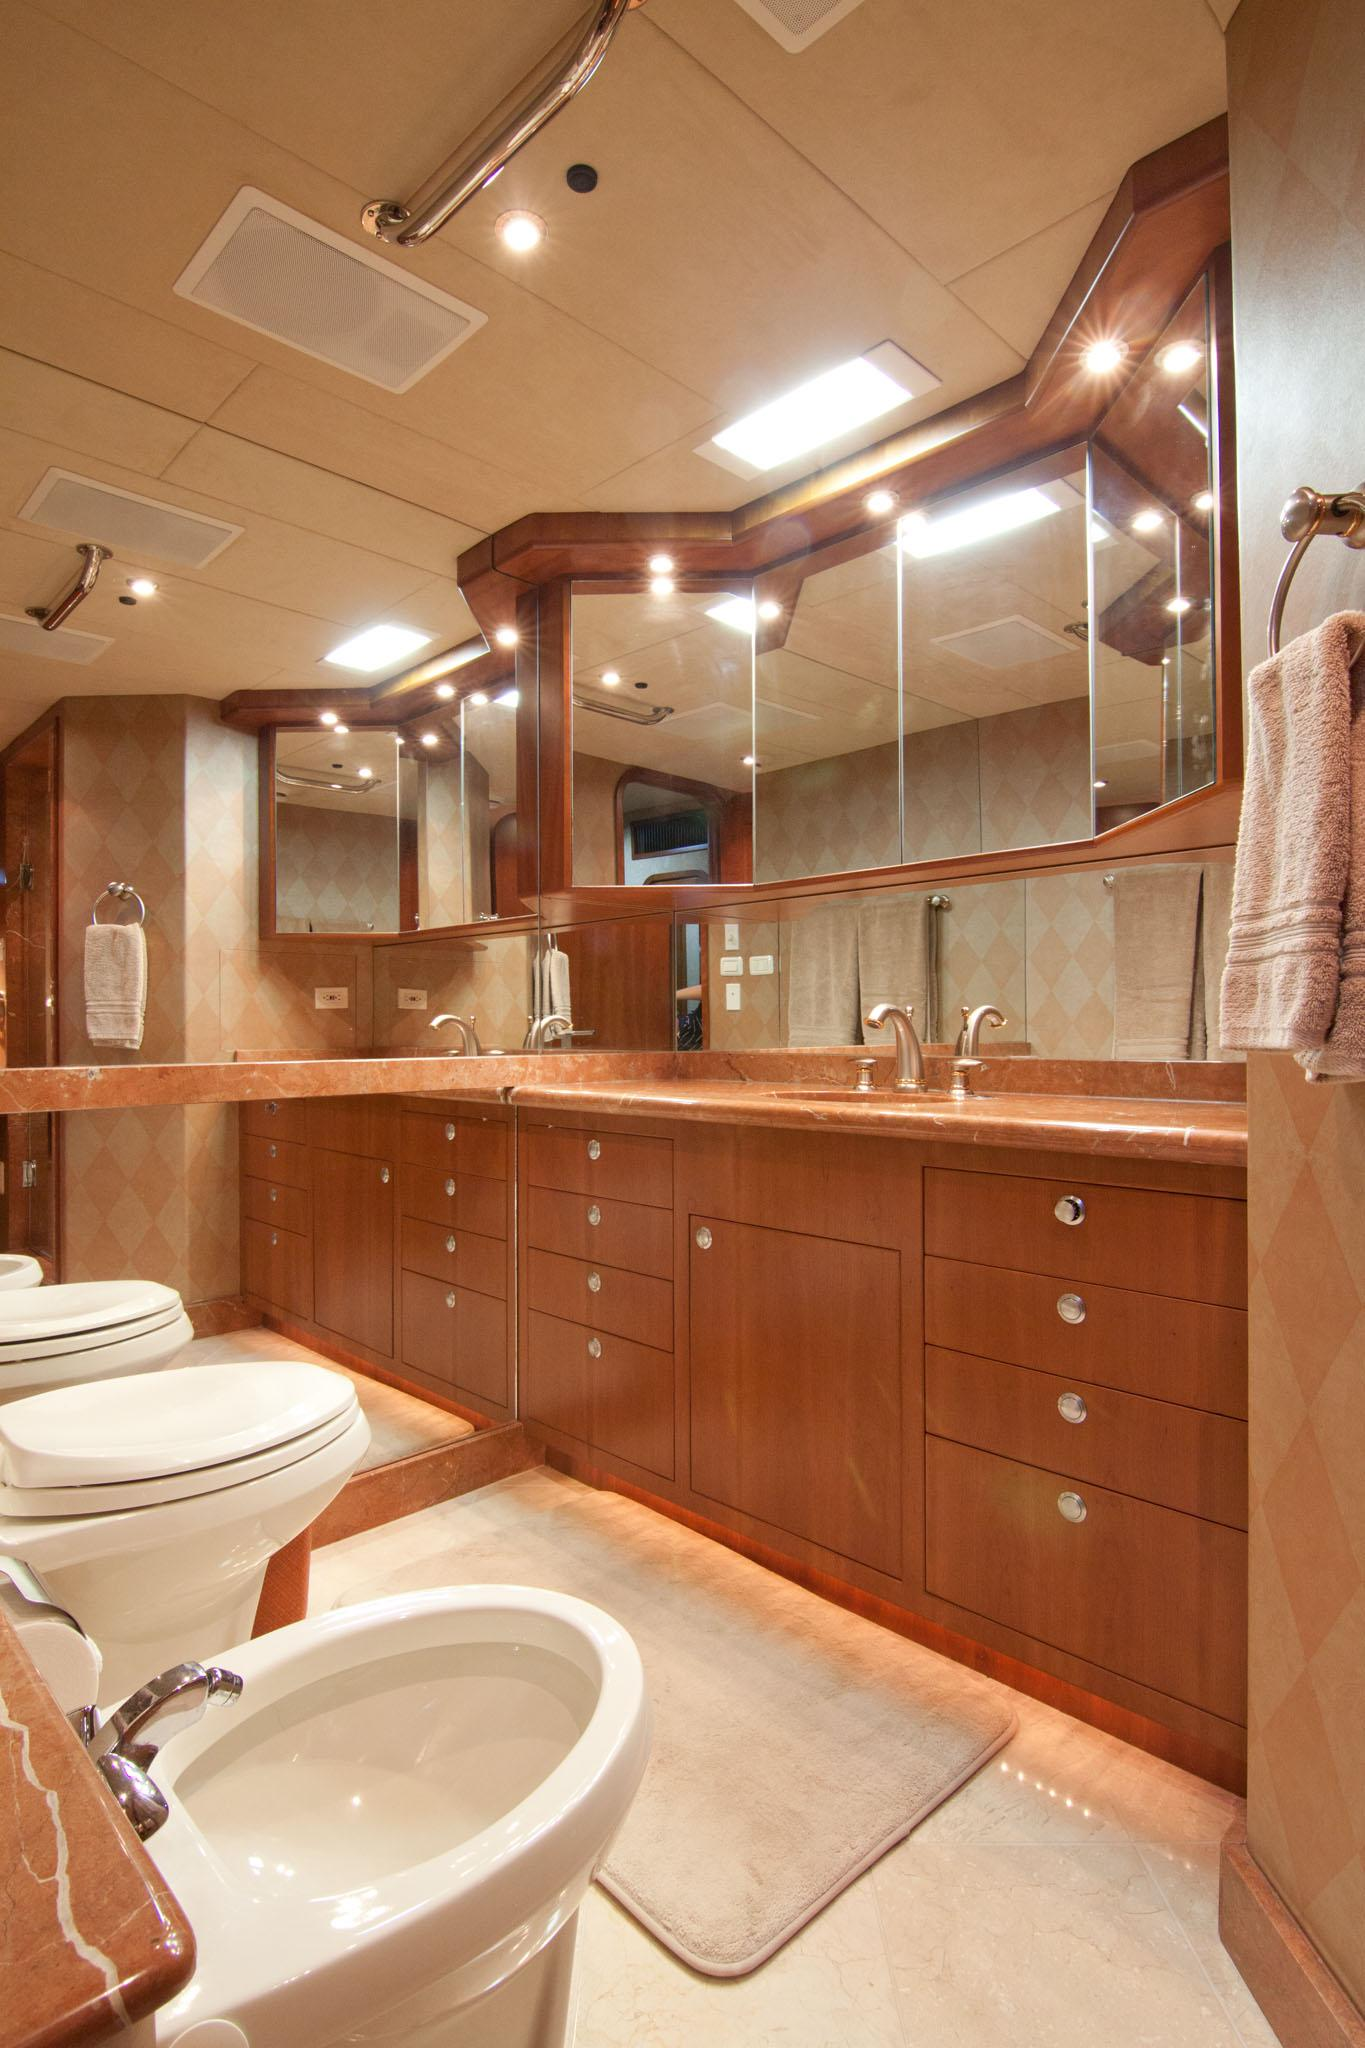 81 cape horn 2003 whiskey hotel for sale in fort lauderdale  florida  us